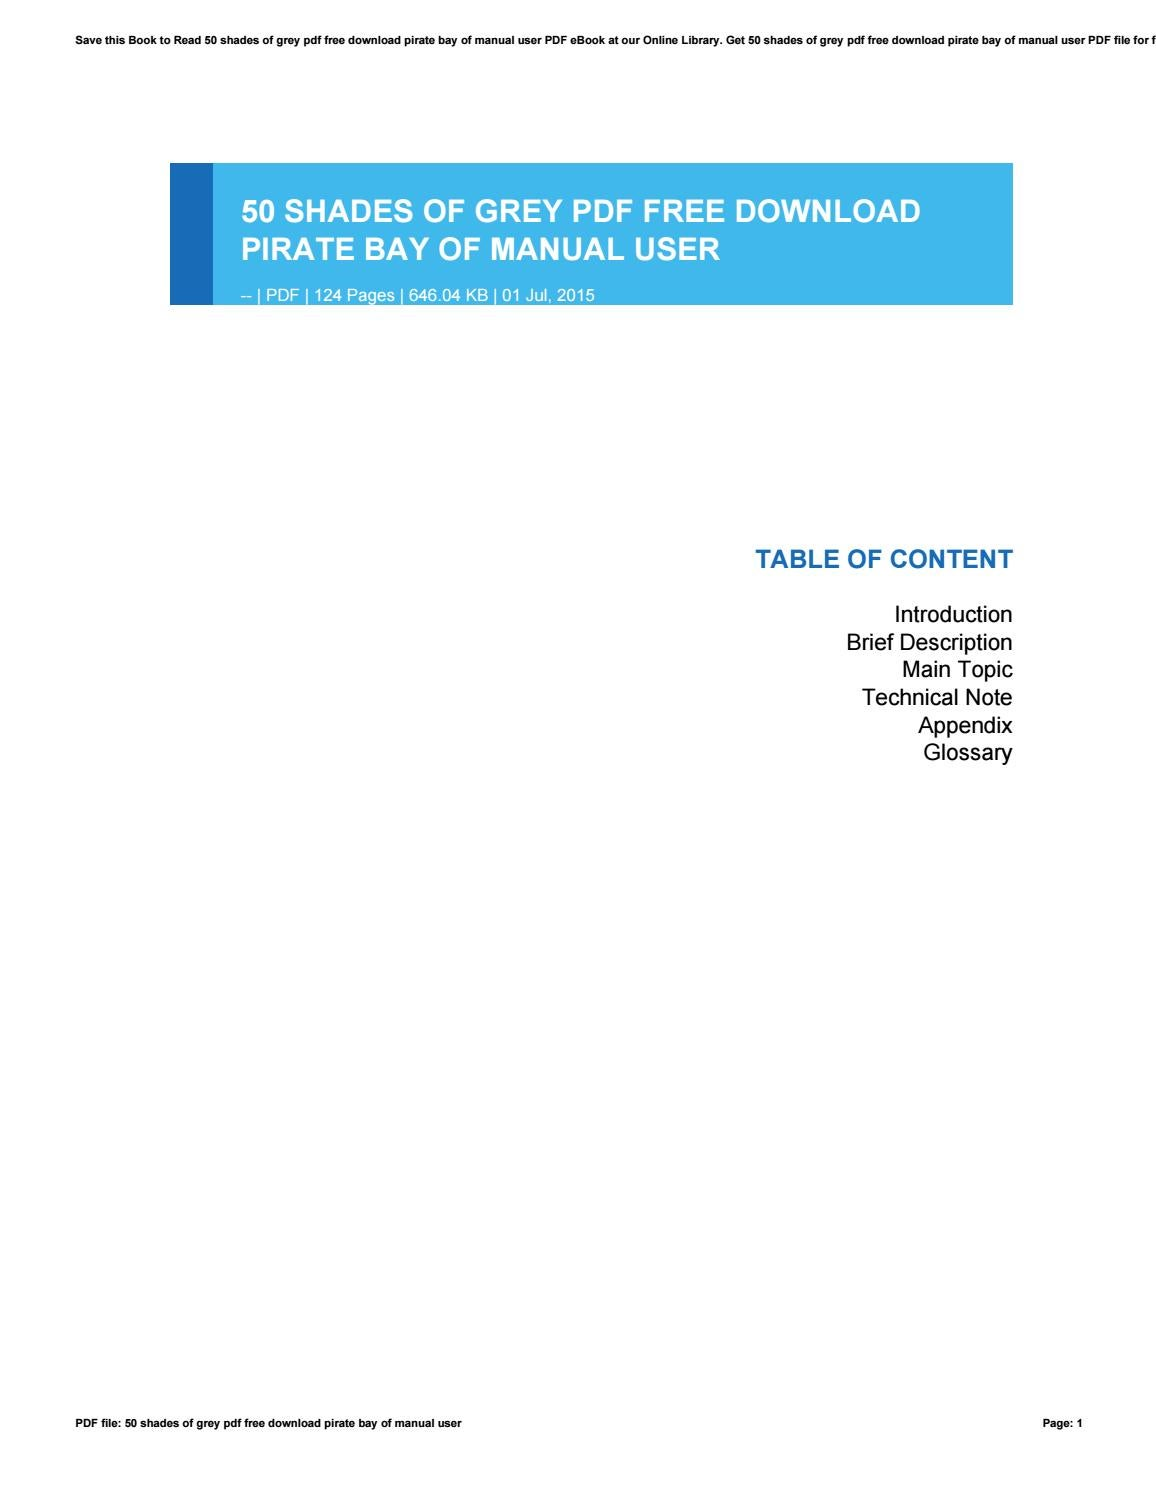 50 shades of grey pdf free download pirate bay of manual user by xing88645  - issuu